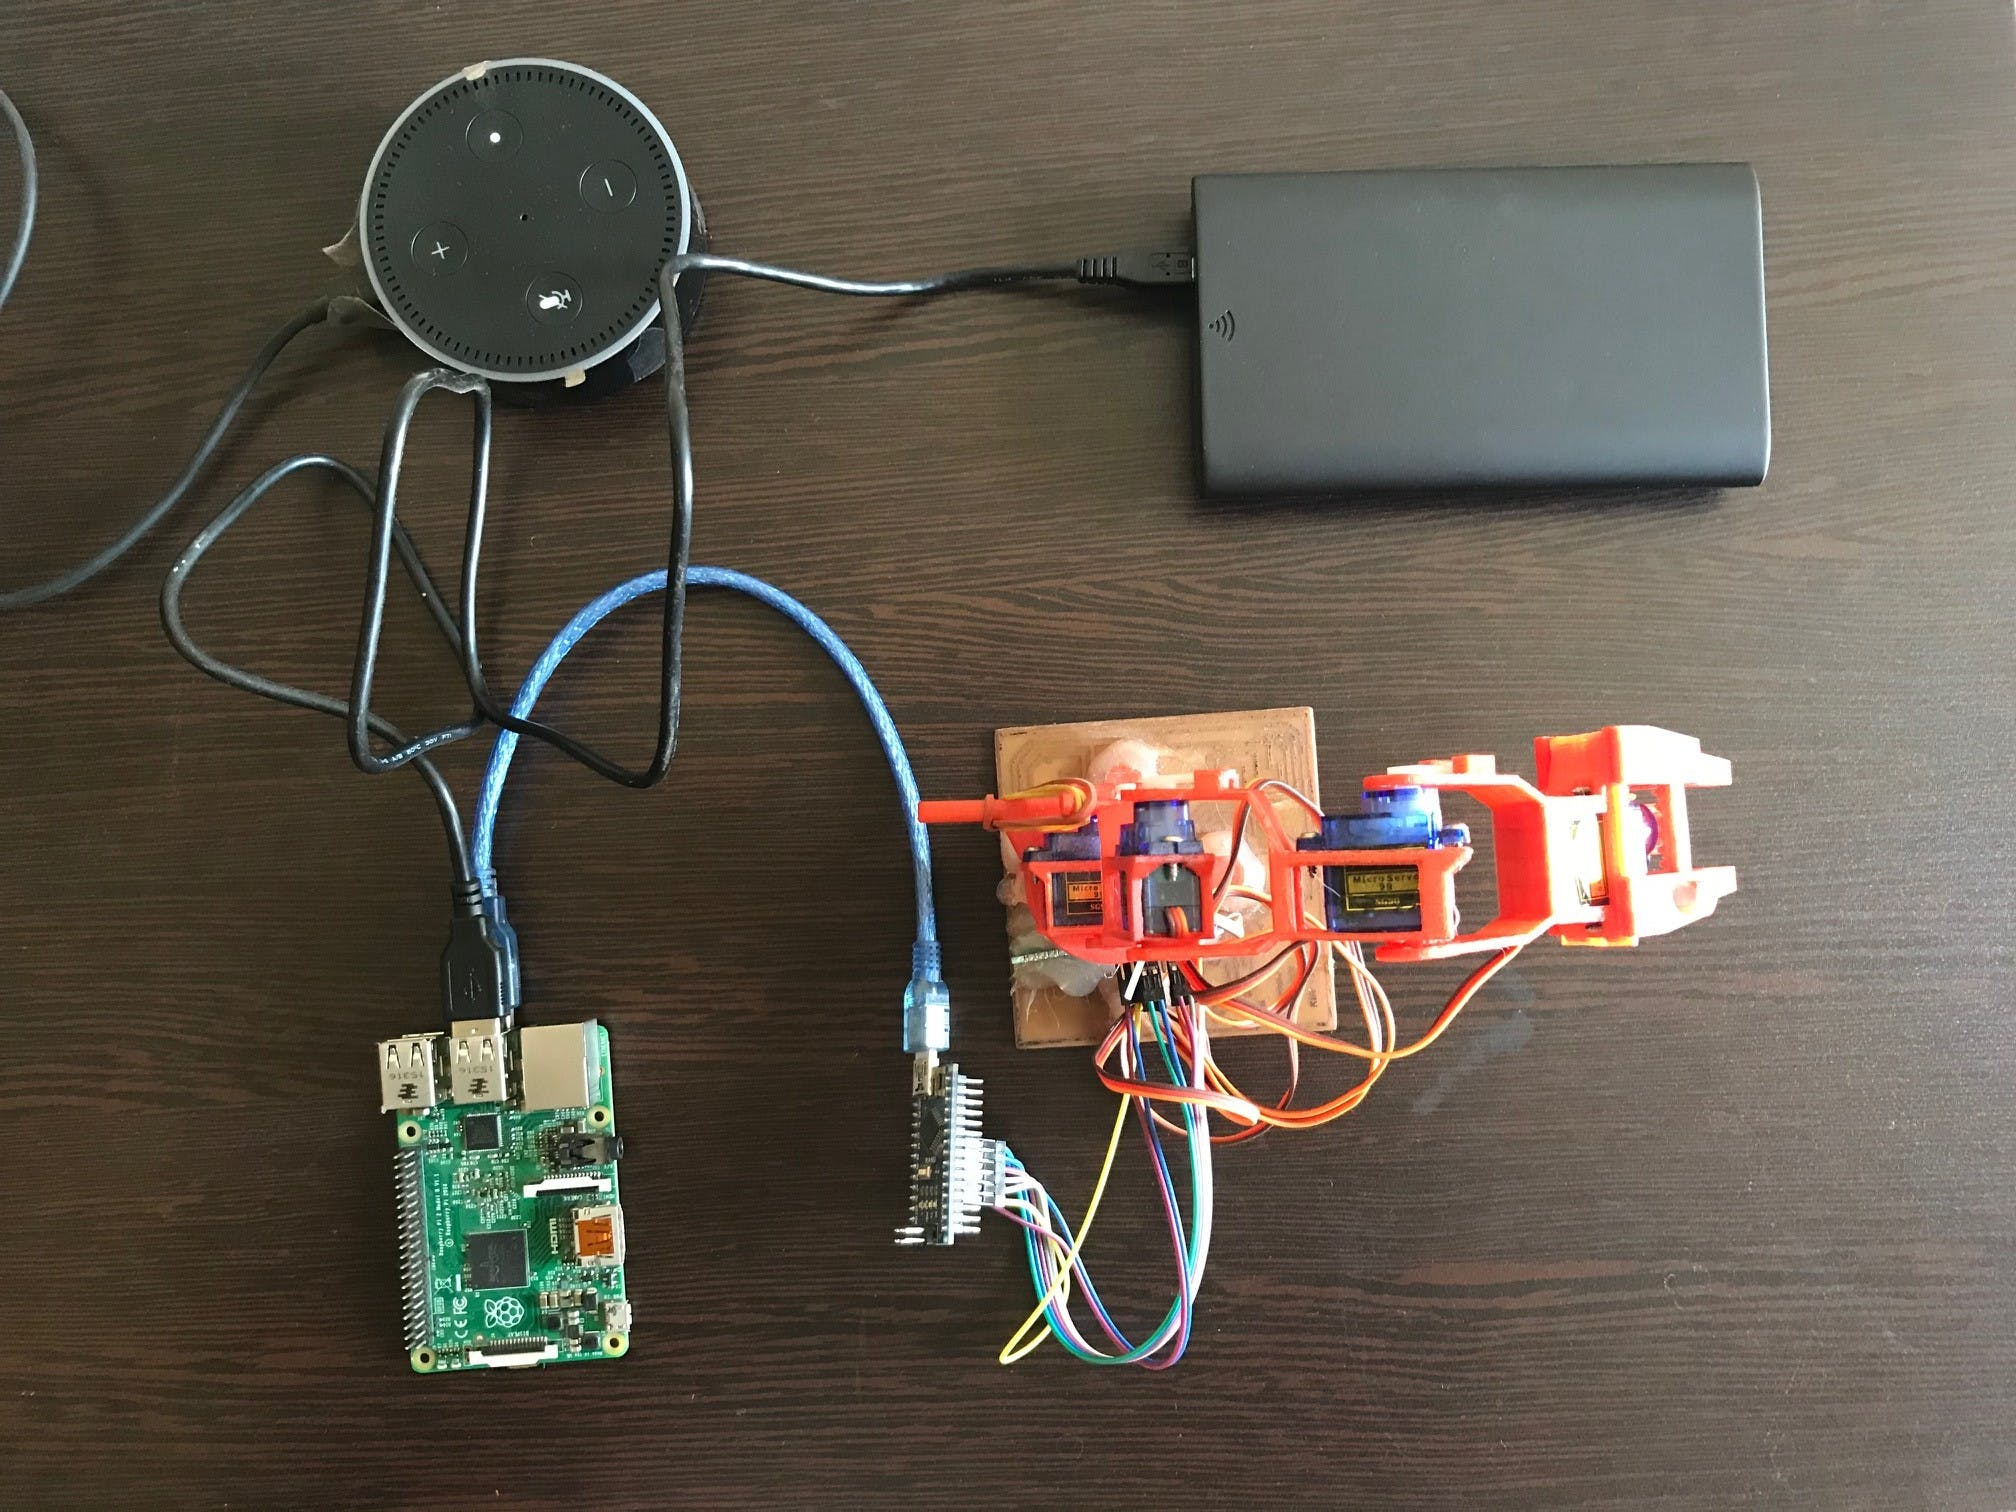 Connection of Raspberry Pi, Walabot and Robotic Arm